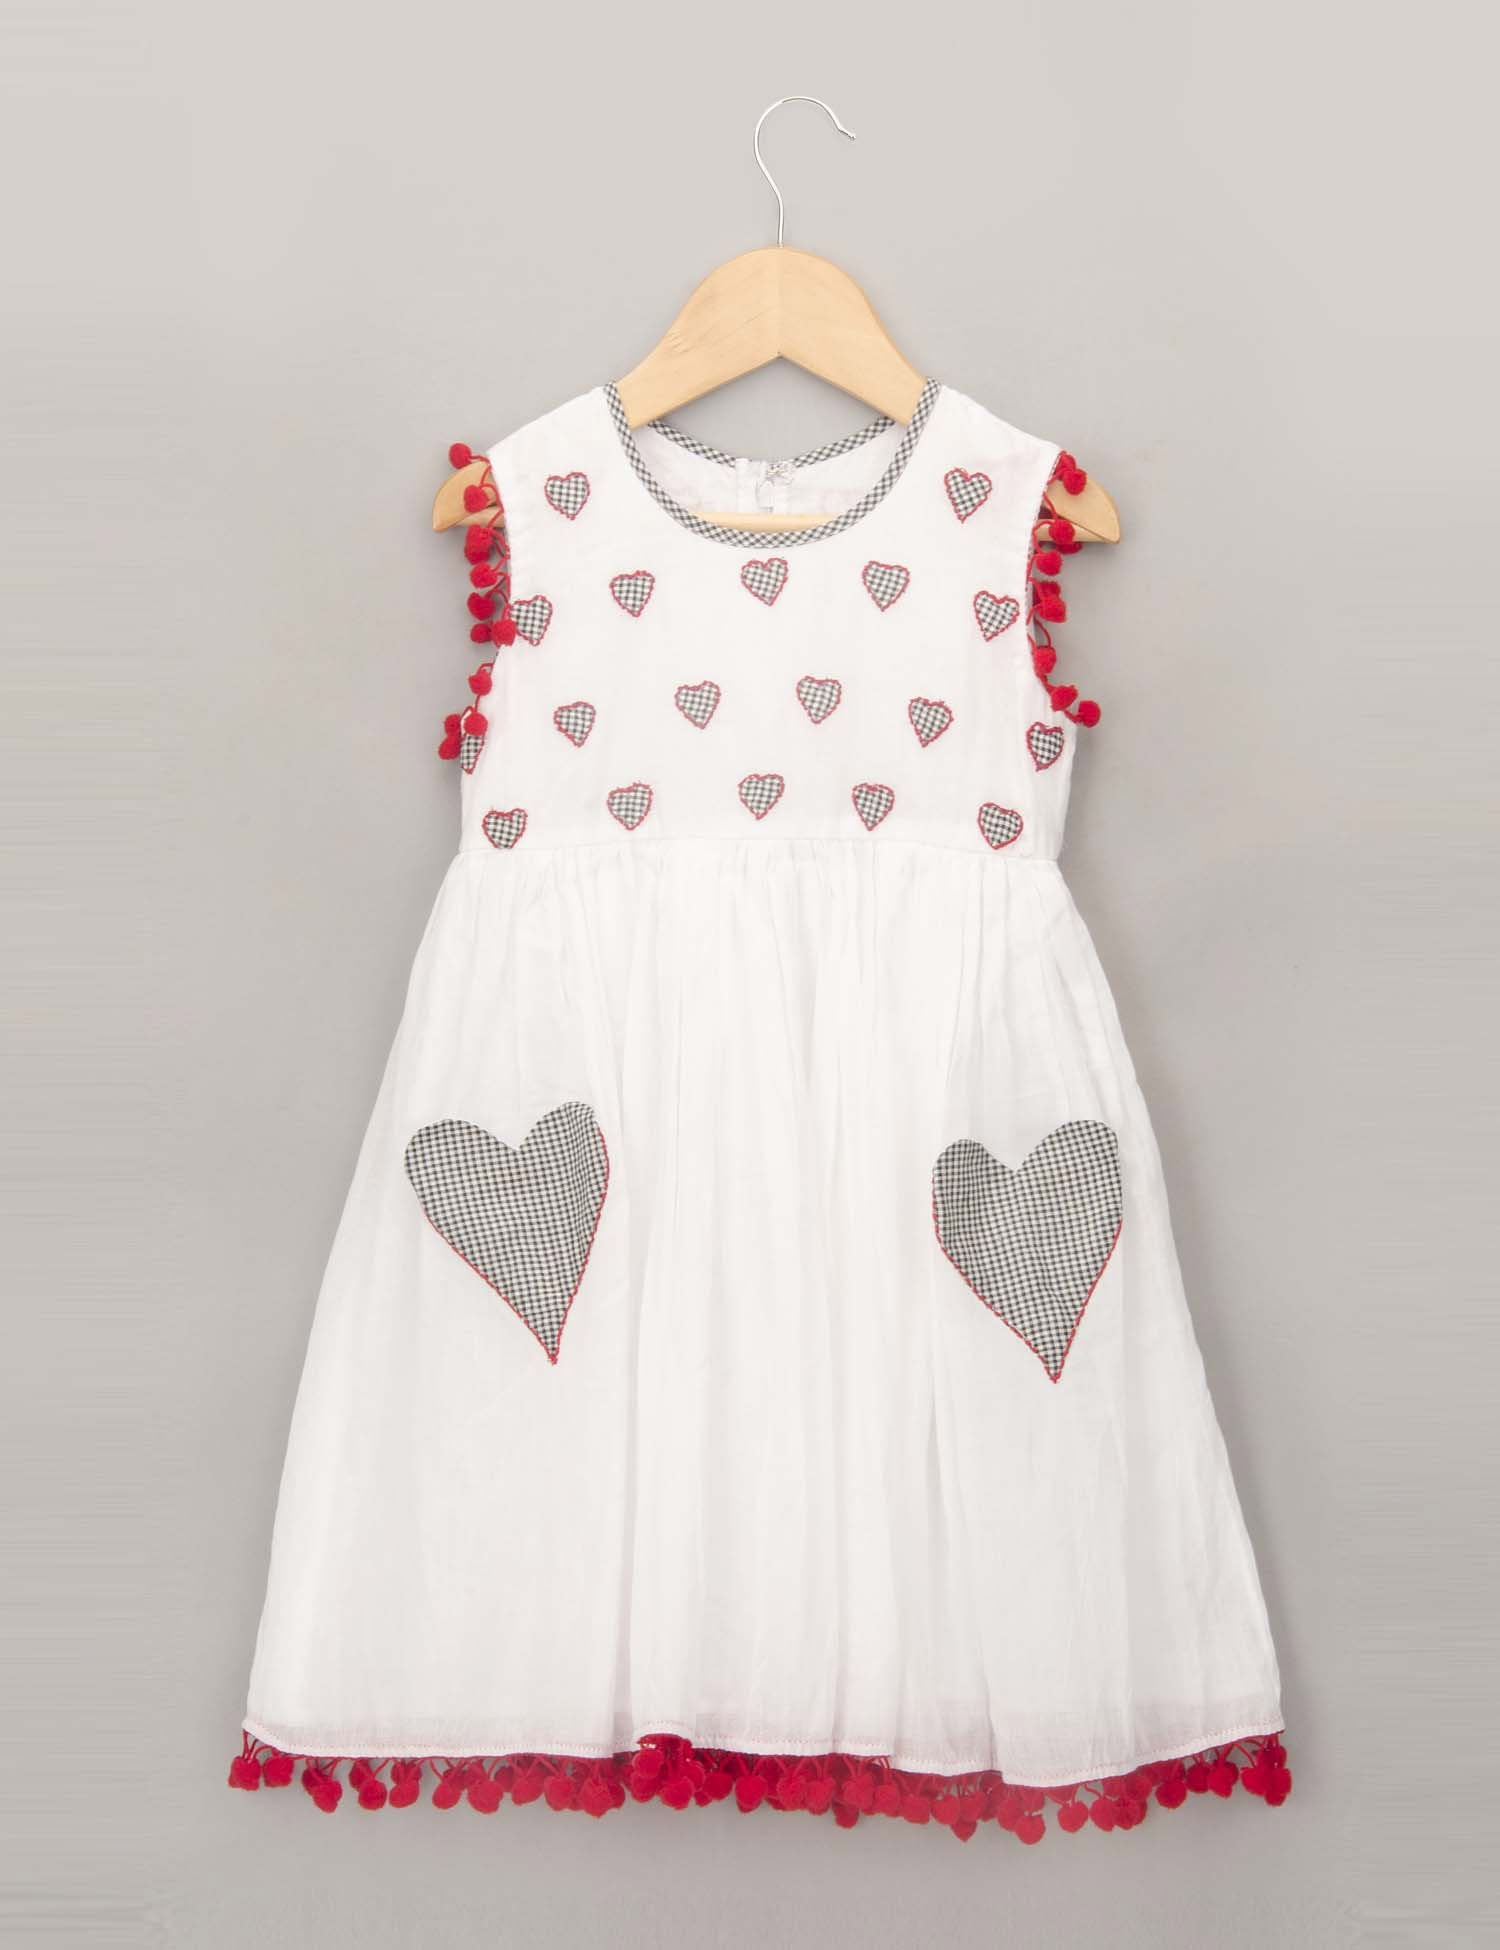 Patchwork Embroidered Dress with Heart Pockets